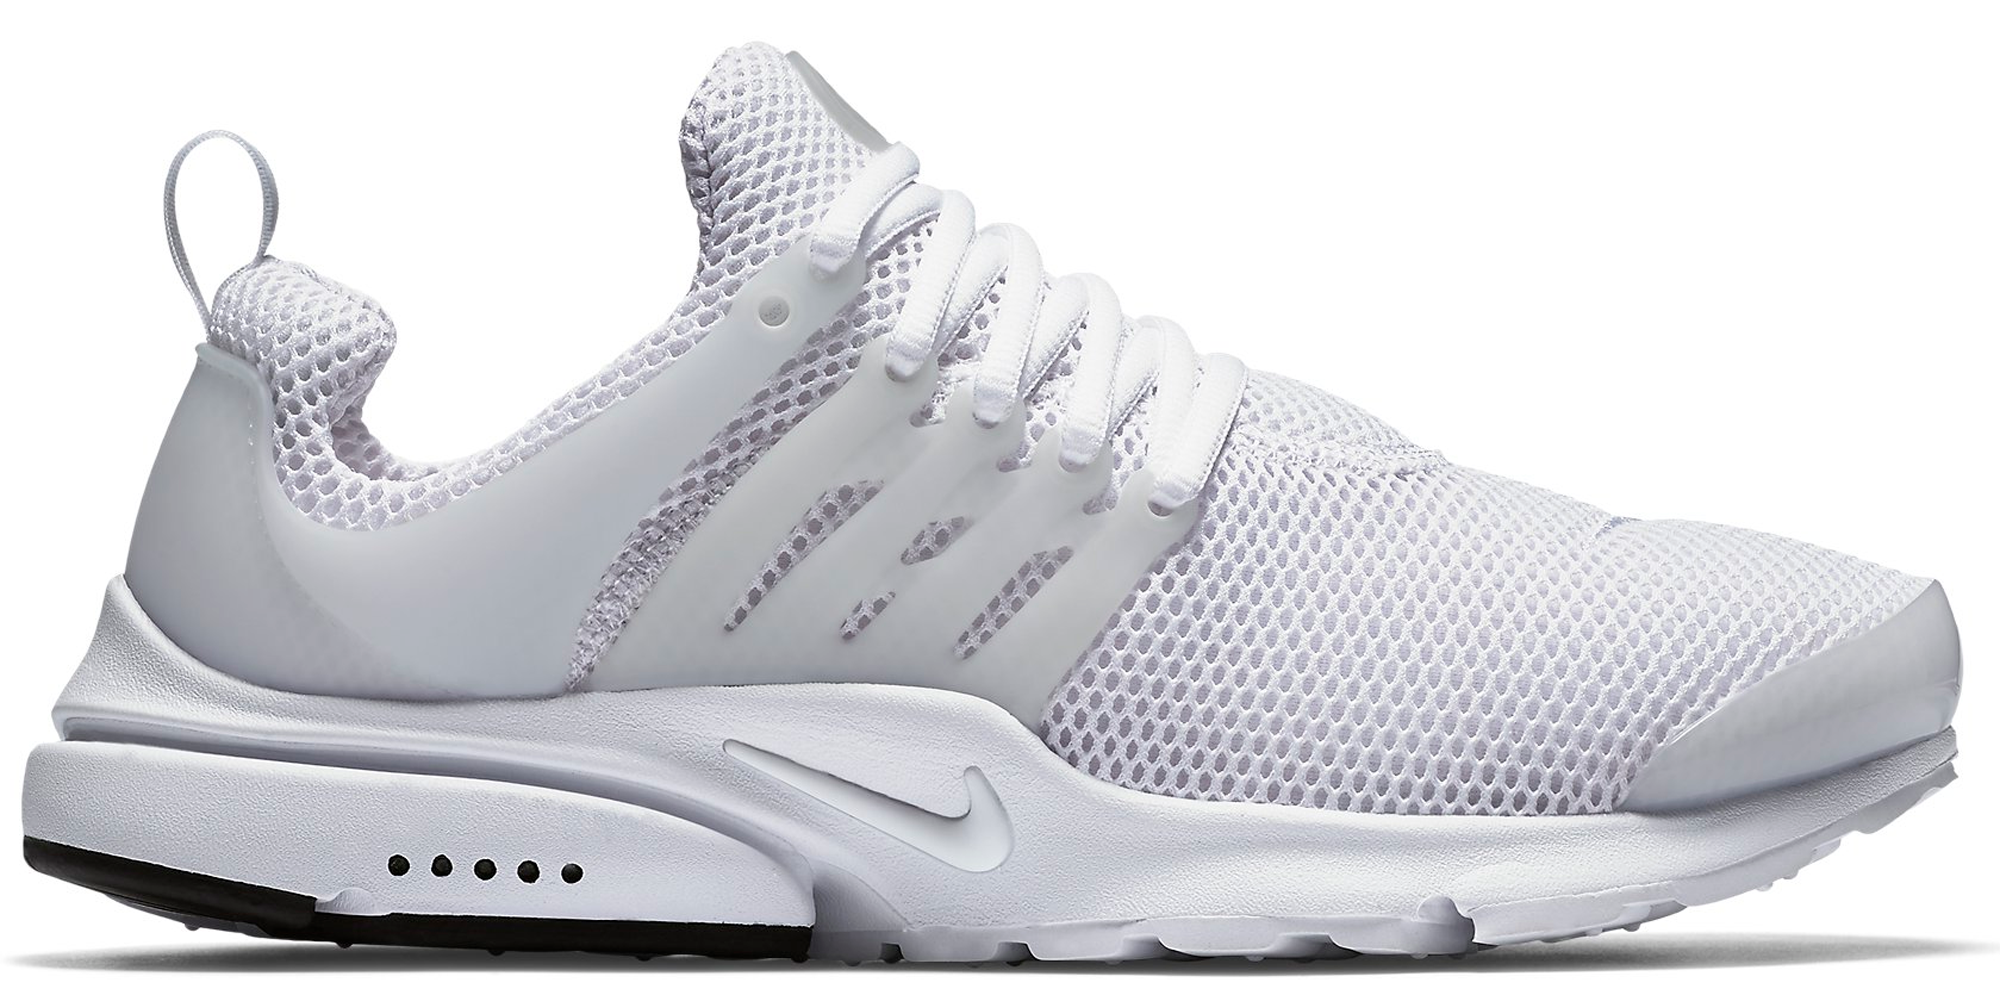 a29edb88d2cce9 Nike Air Presto White Mesh - StockX News